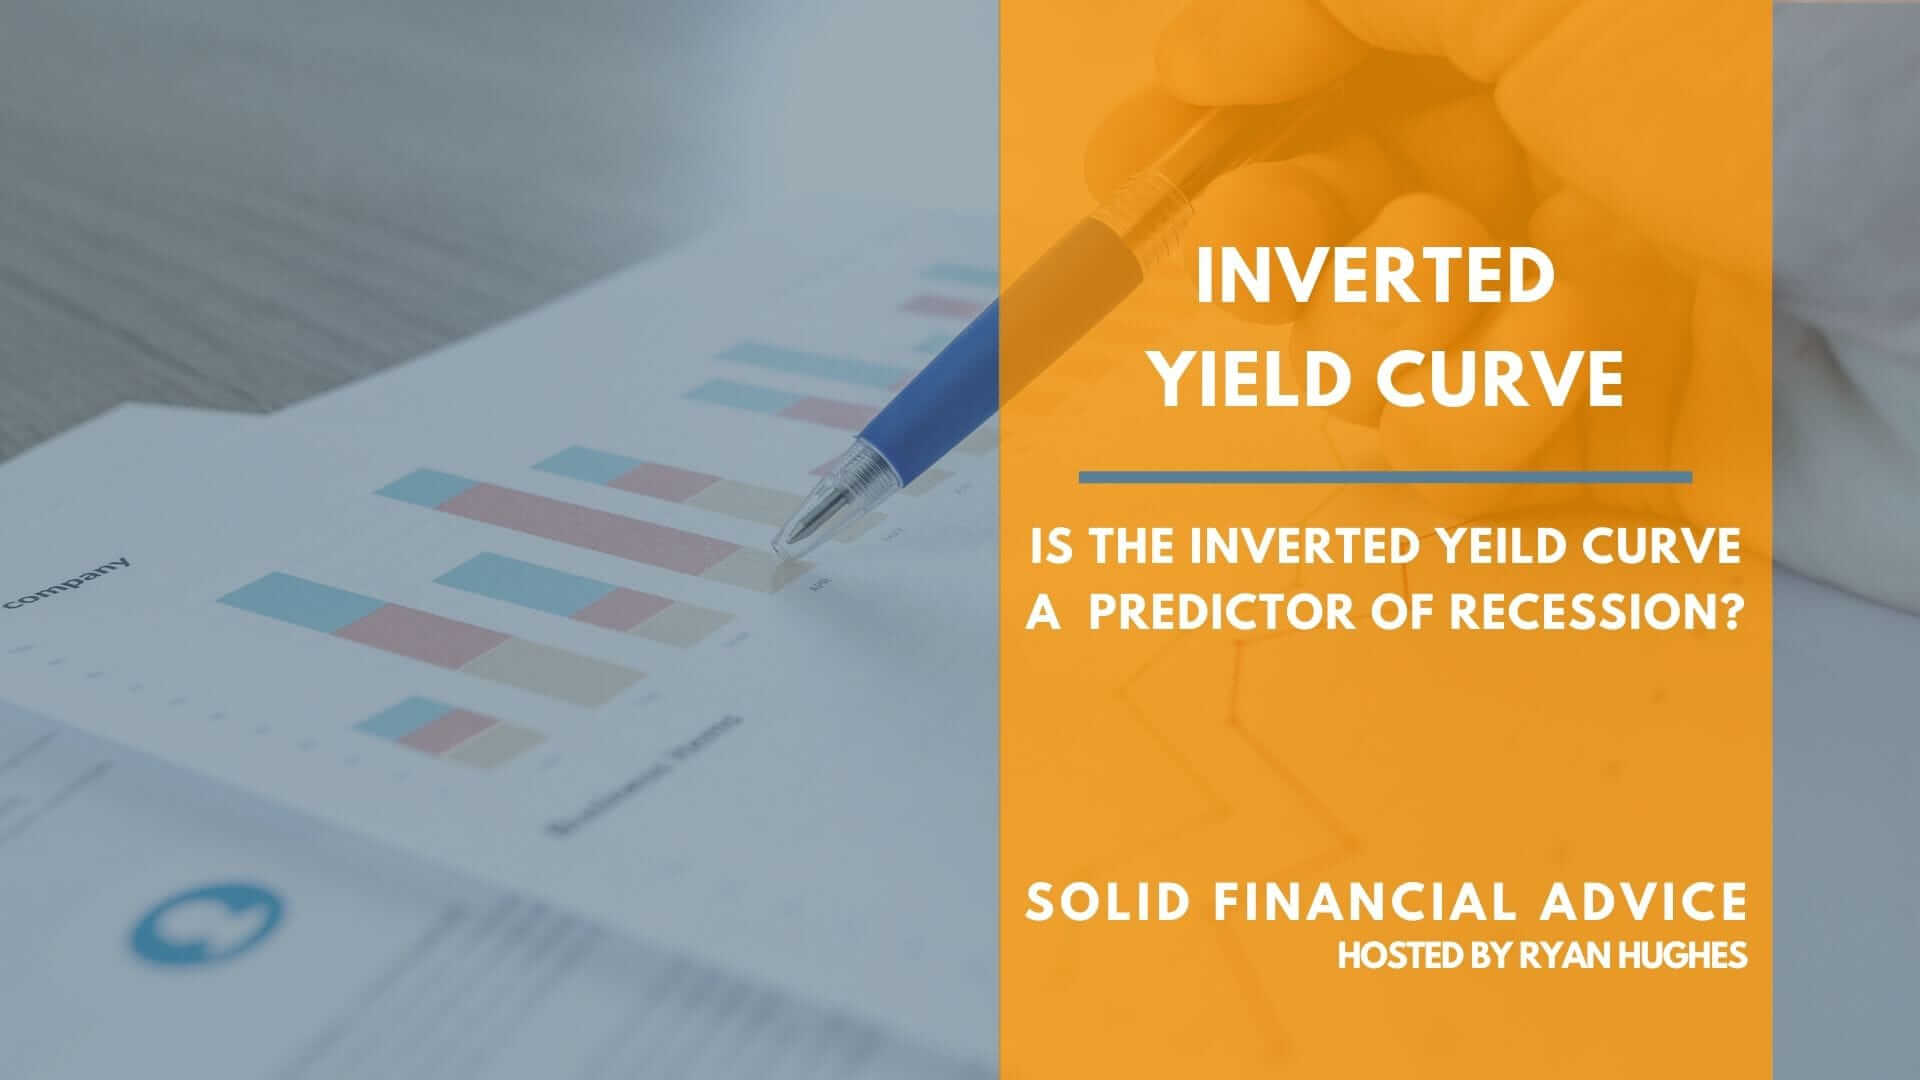 Is The Inverted Yield Curve A Predictor Of Recession